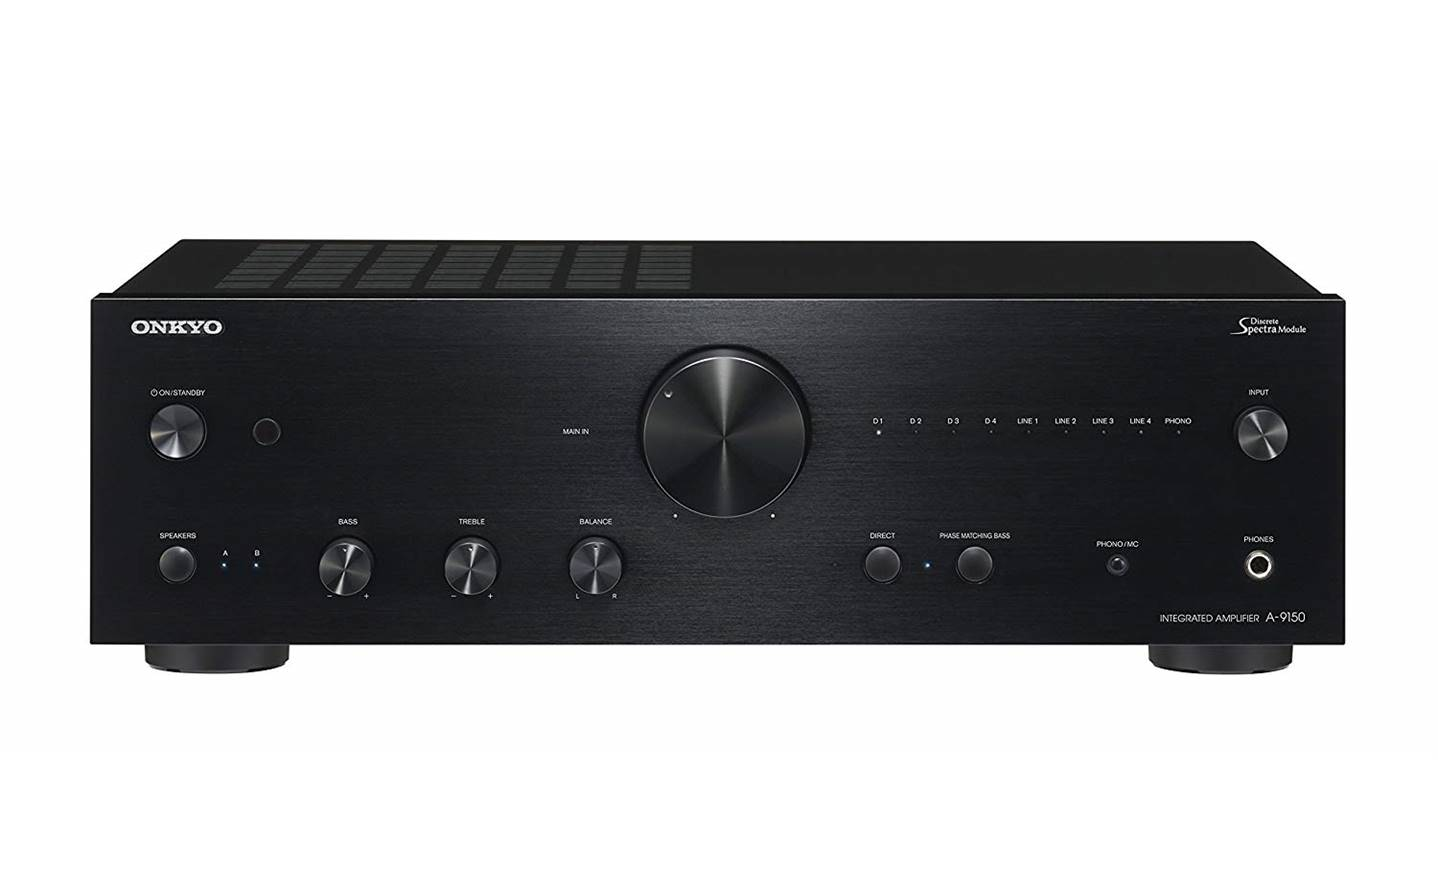 Onkyo A-9150 Stereo Amplifier